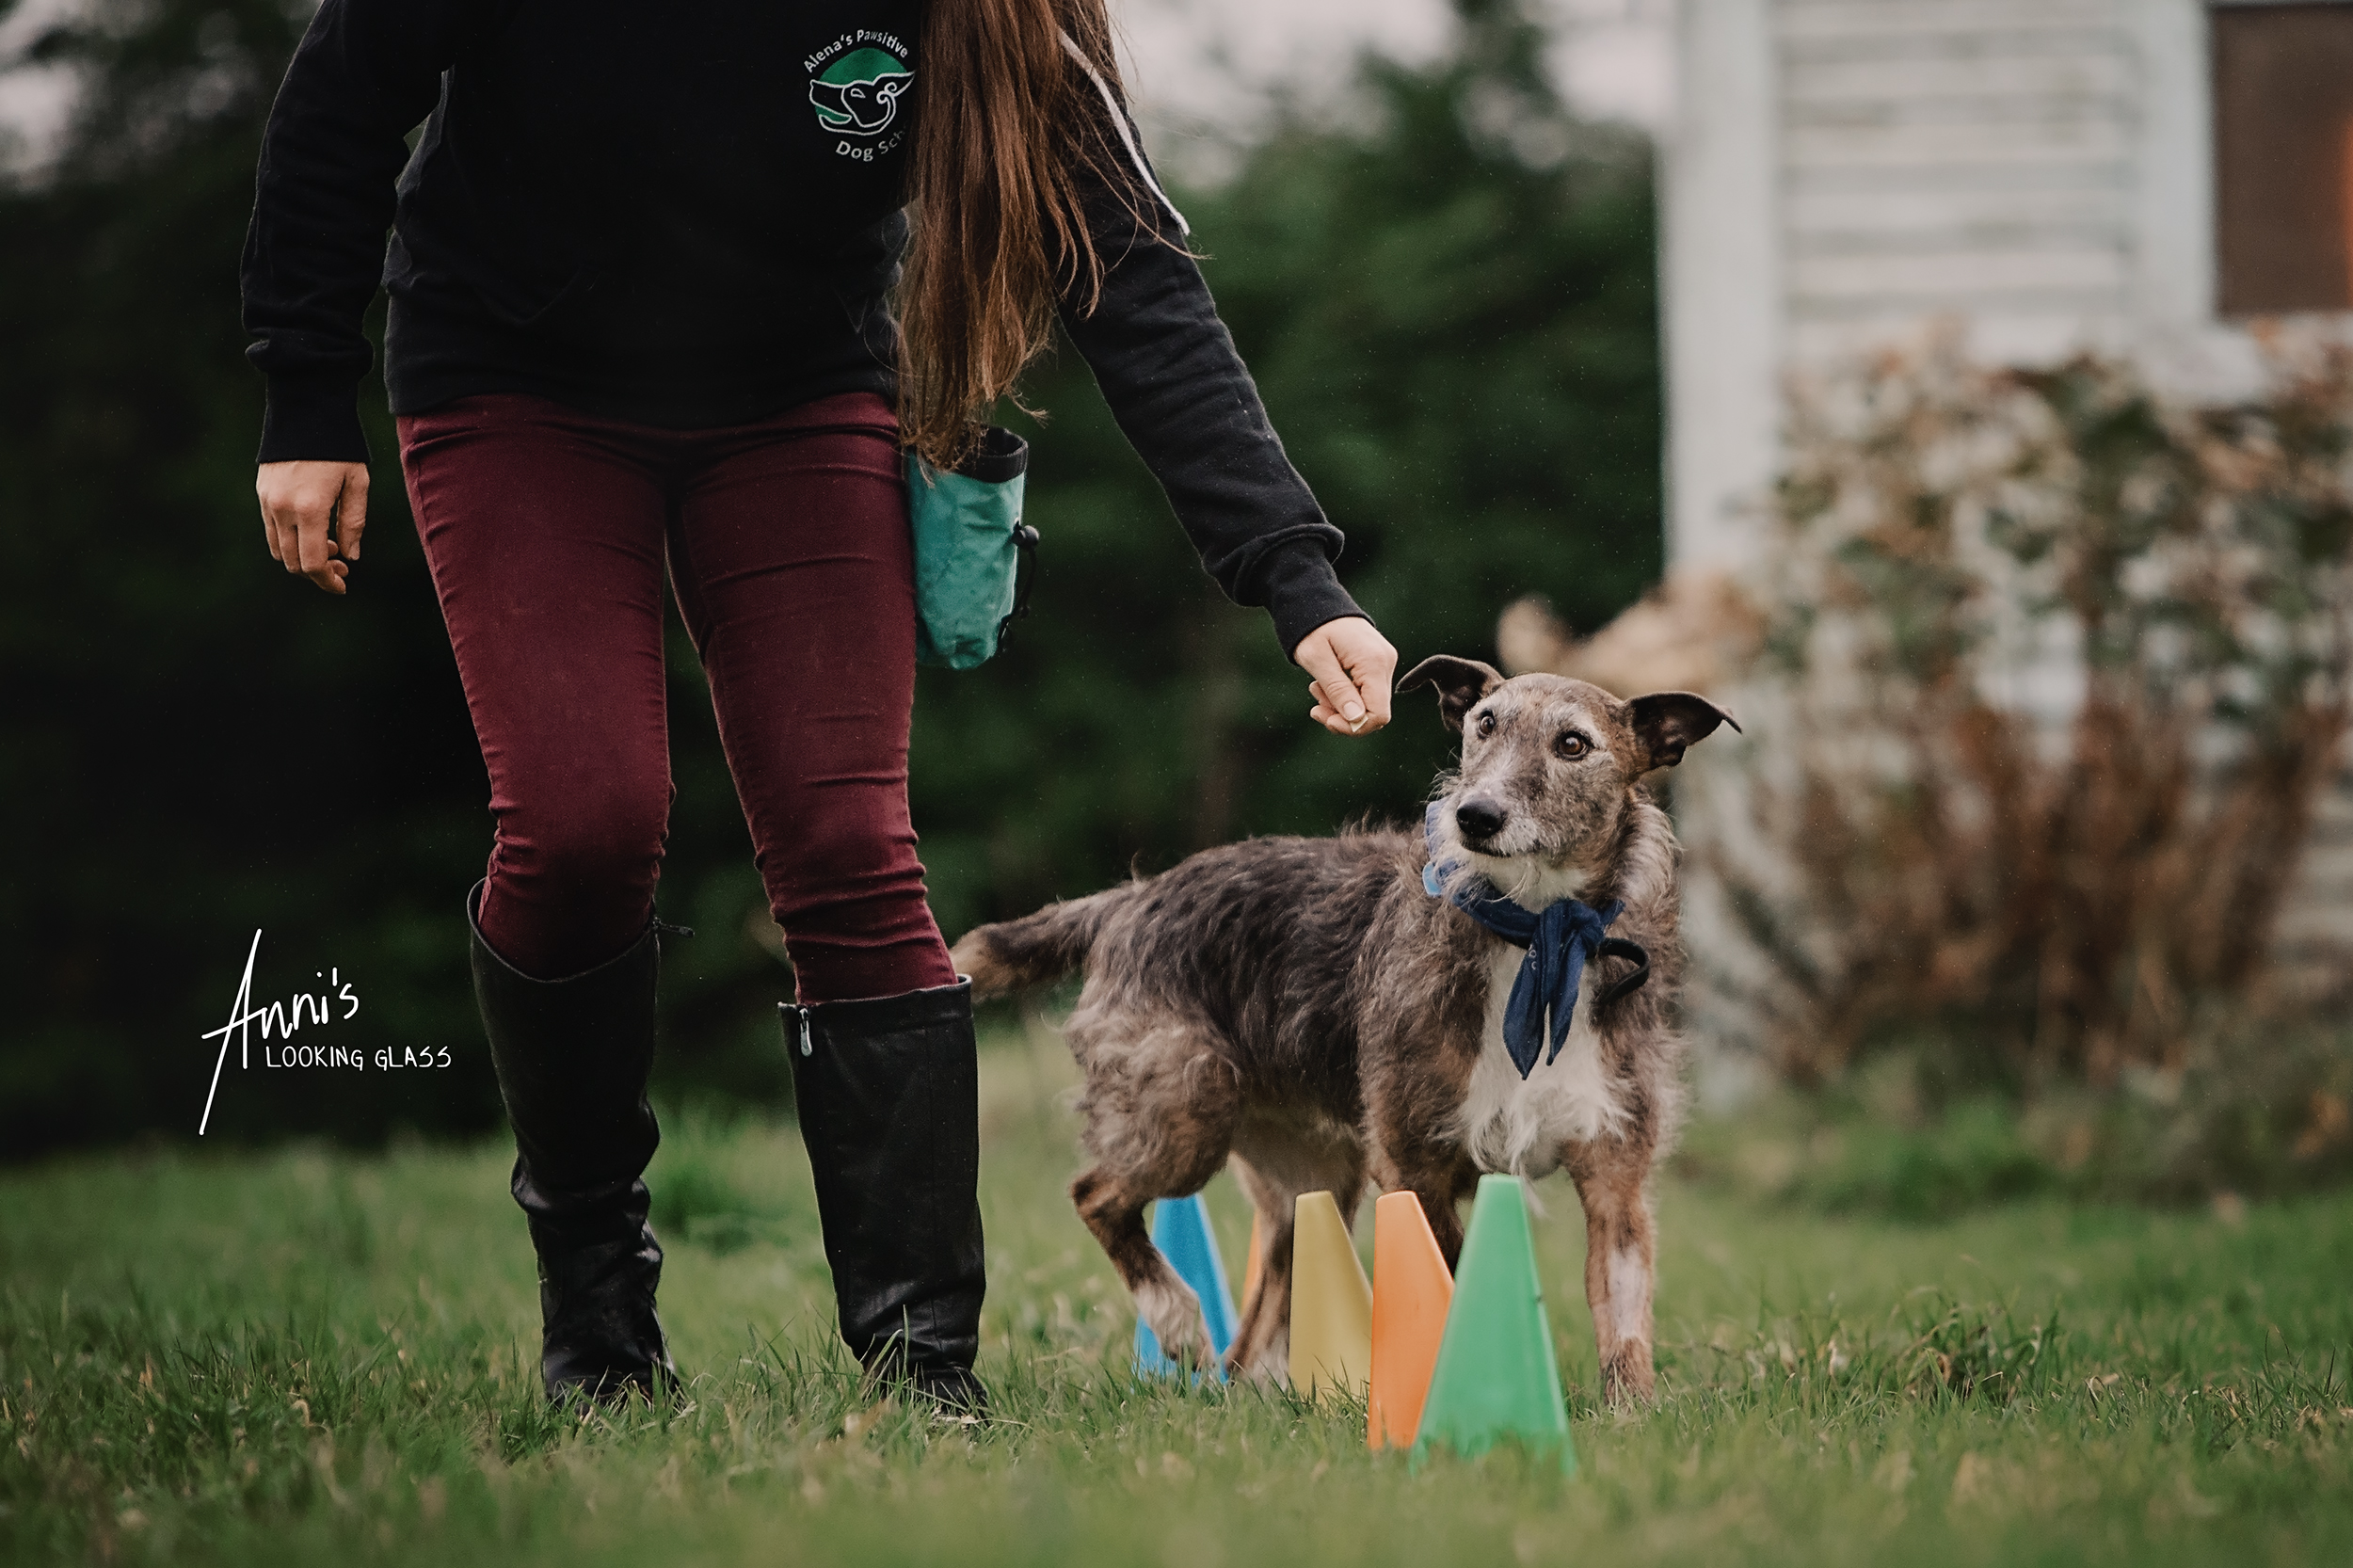 A young woman wearing a sweater branded with Alena's Pawsitive Dog School guides a greyhound through an agility parcours